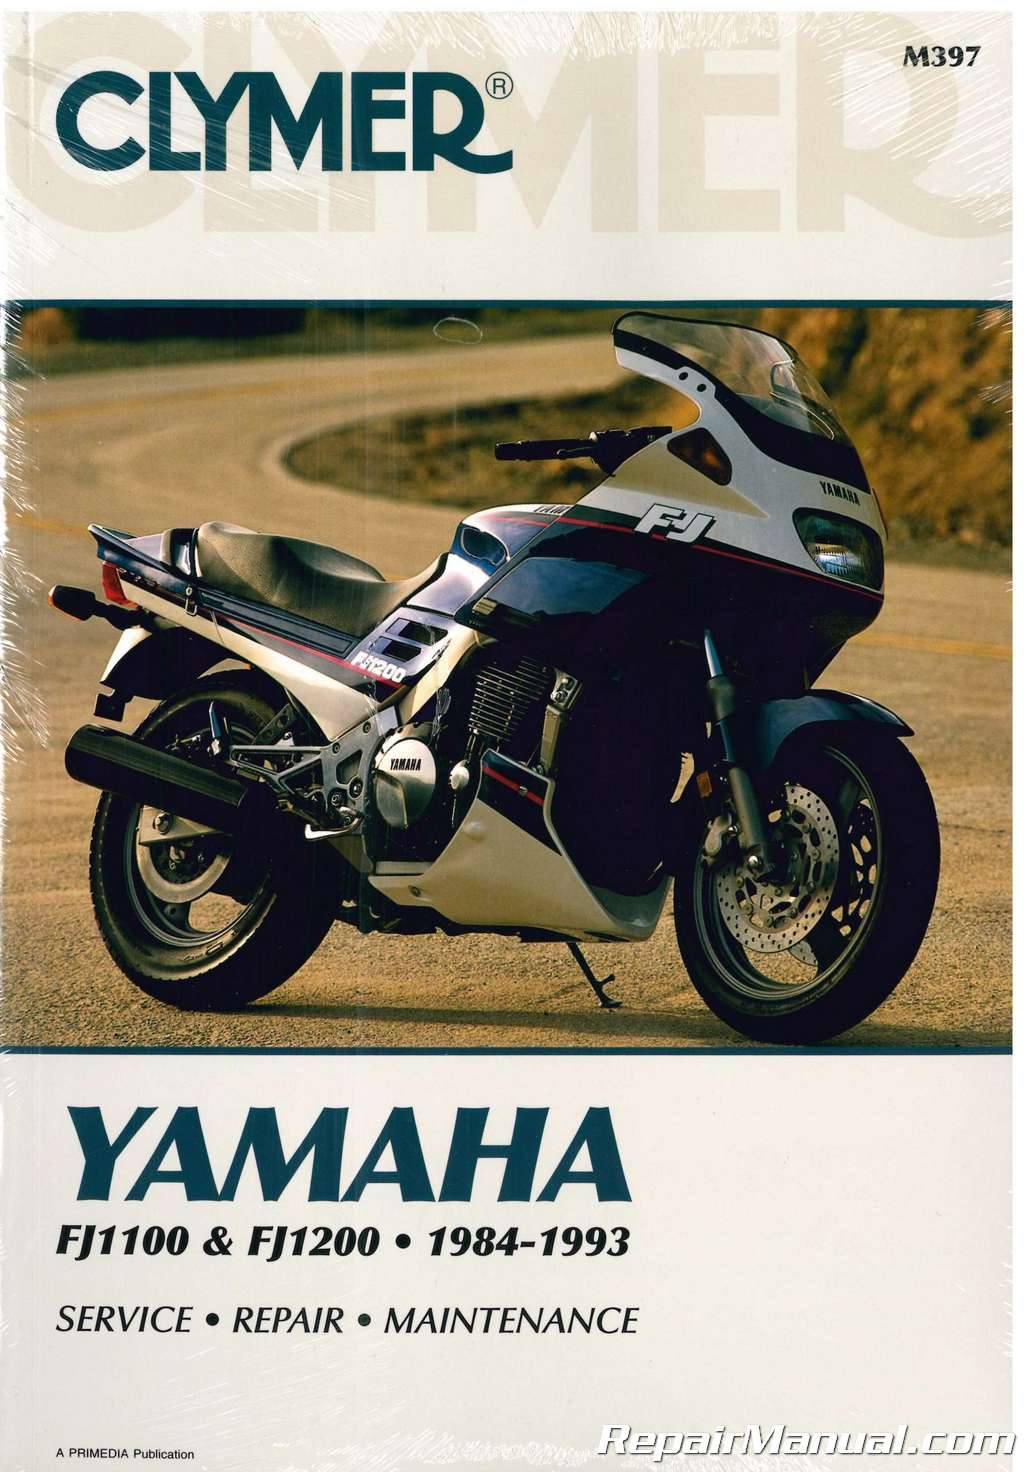 Fj1100 Wiring Diagram Best Electrical Circuit Diagrams Yamaha Sr 500 Clymer Fj1200 1984 1993 Motorcycle Repair Manual Rh Repairmanual Com Automotive 1985